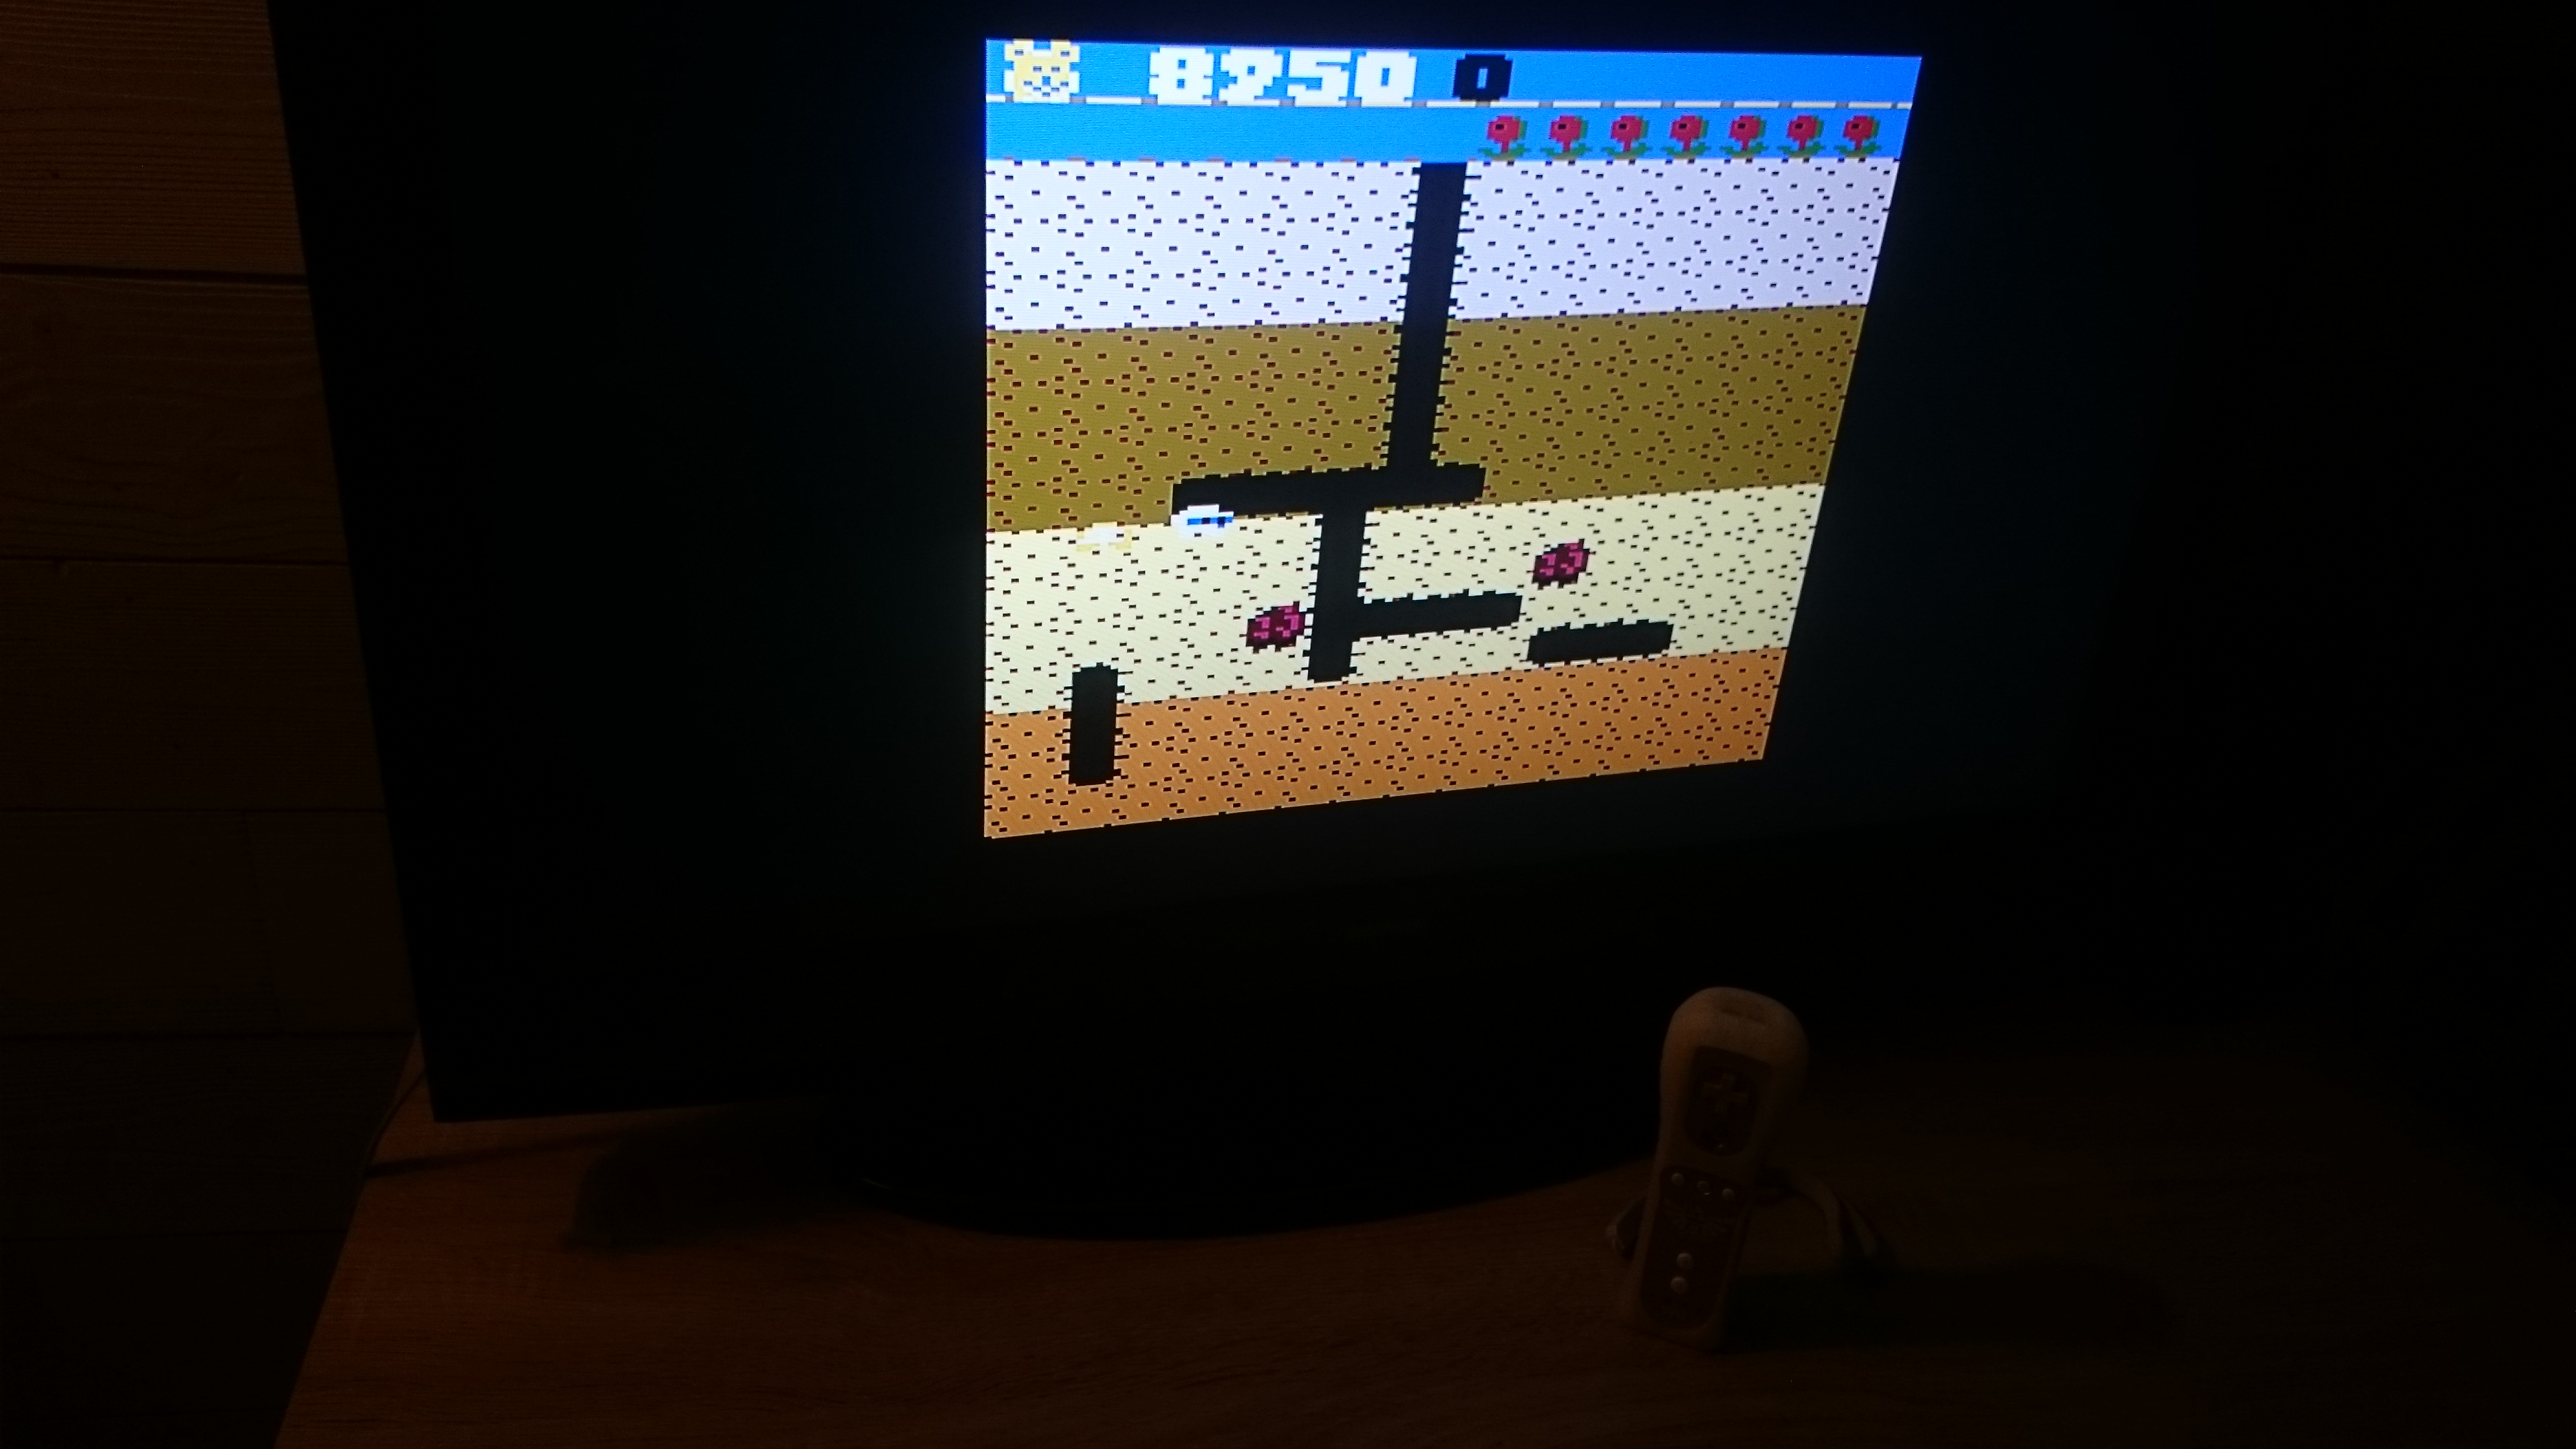 EddieNiceguy: Dig Dug: Teddy Bear (Atari 7800 Emulated) 8,250 points on 2017-11-28 15:44:28